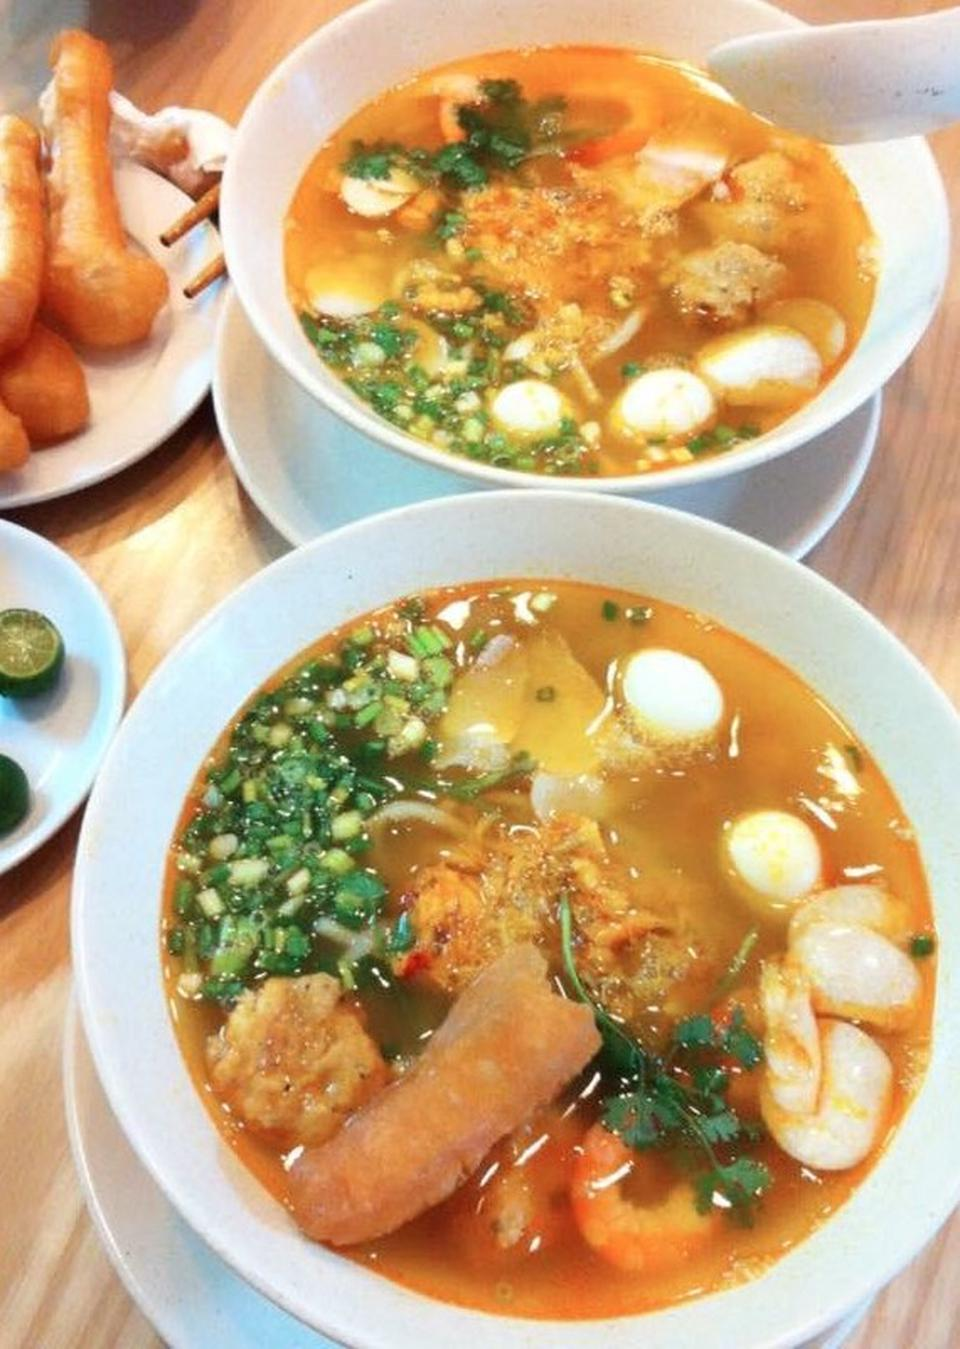 banh canh ghe 18